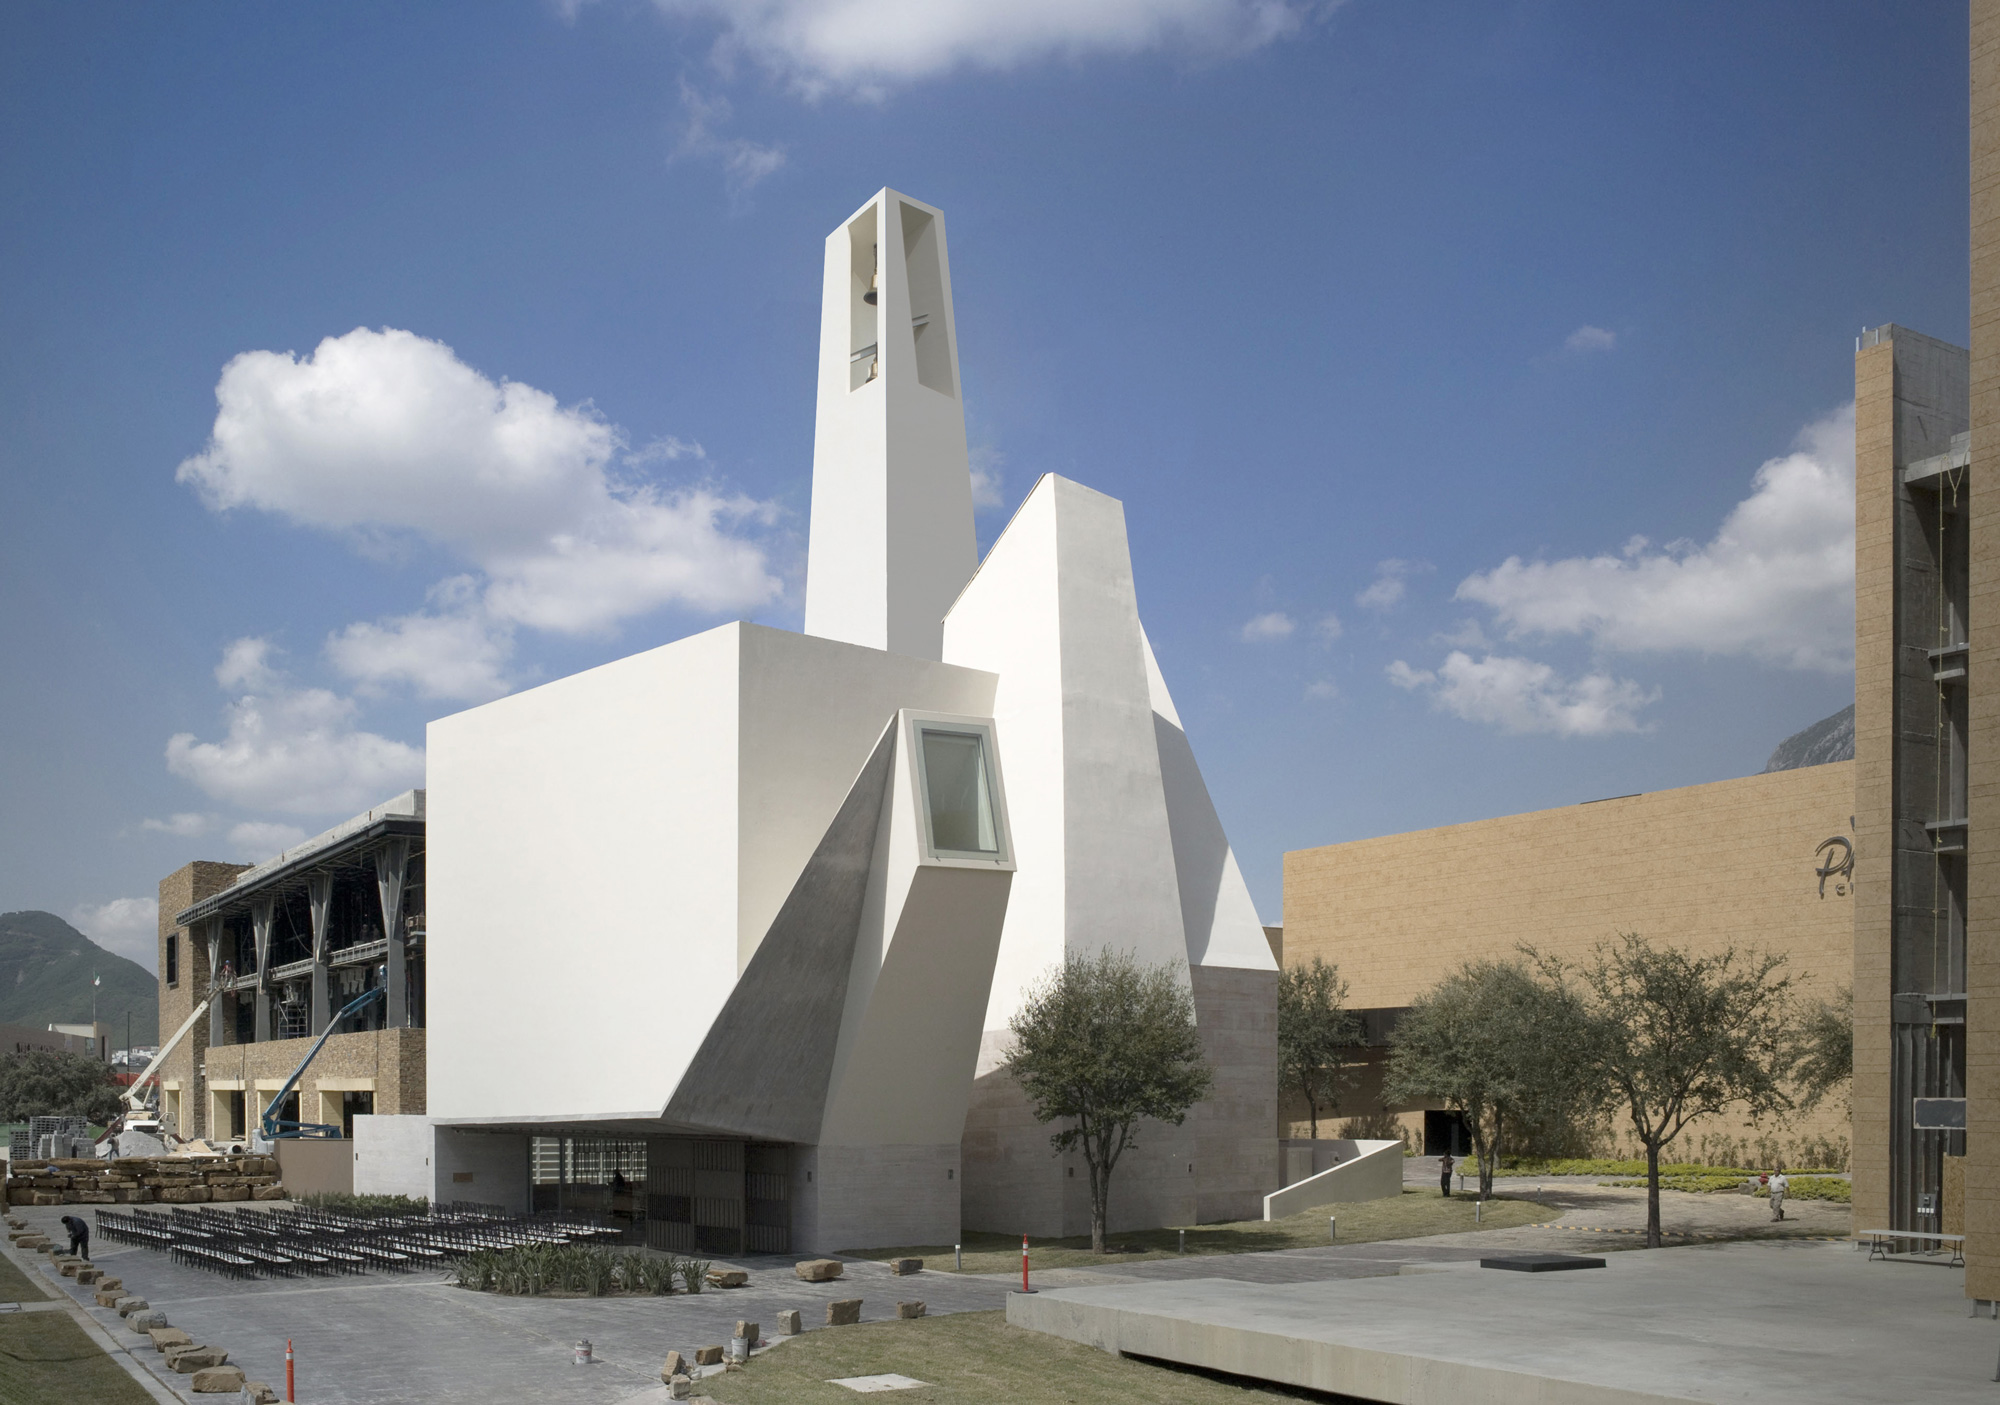 Parish Church El Senor De La Misericordia, Moneo Brock - Jeffrey Brock © Moneo Brock